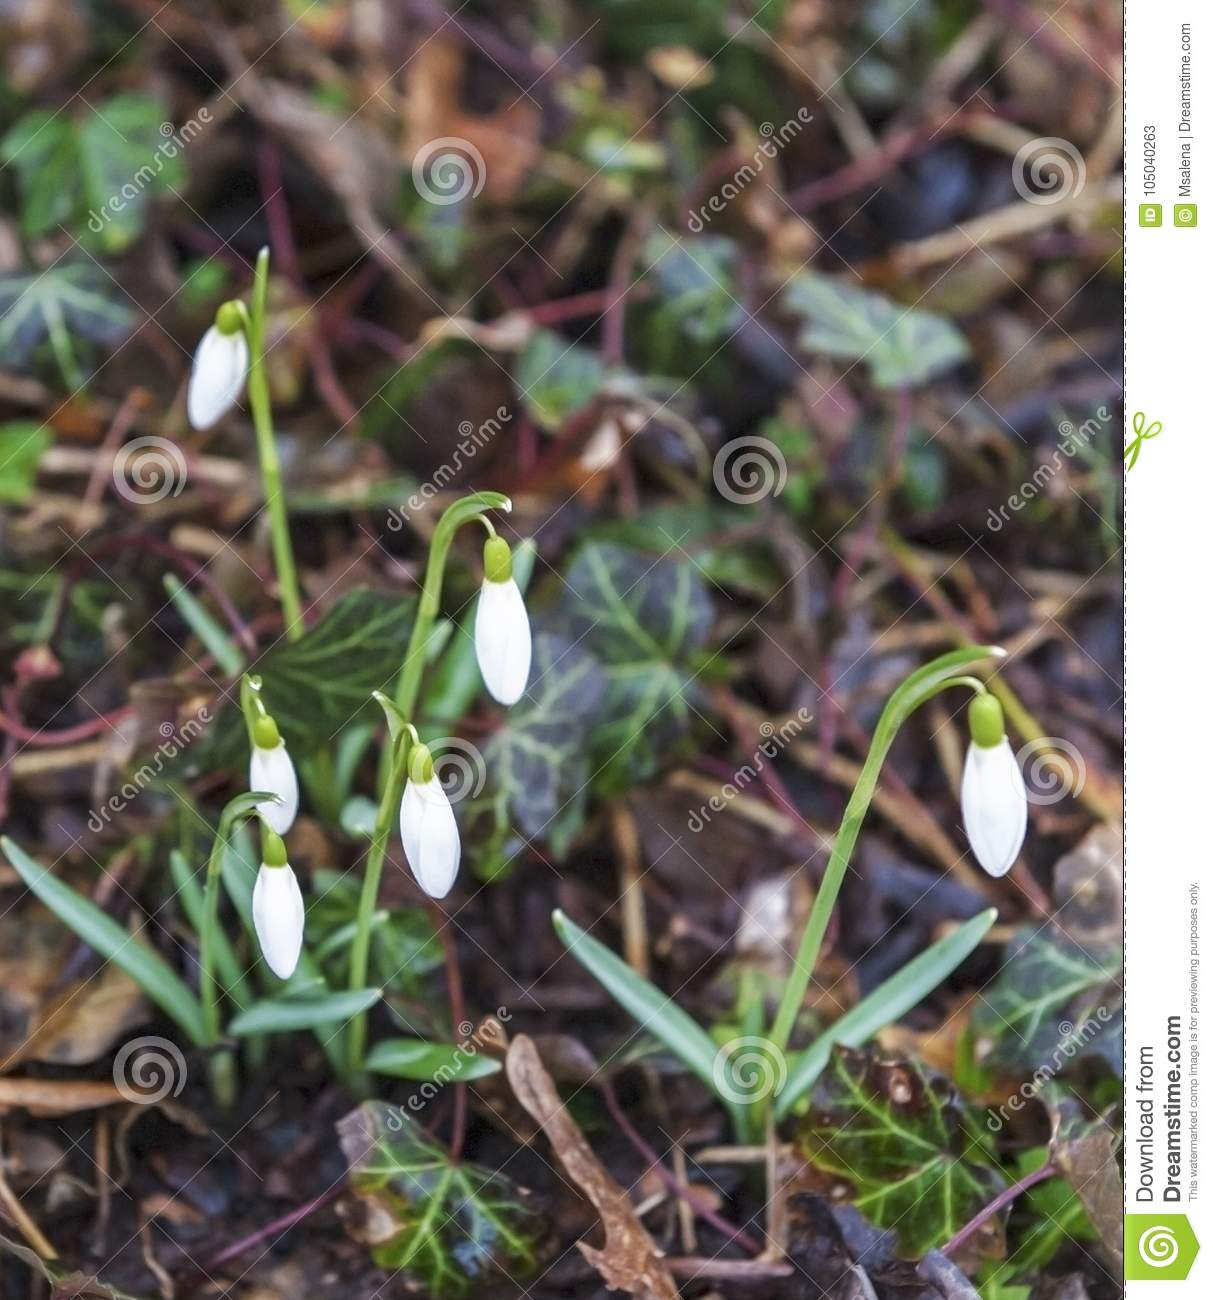 First spring flowers stock image image of tiny white 105040263 download first spring flowers stock image image of tiny white 105040263 mightylinksfo